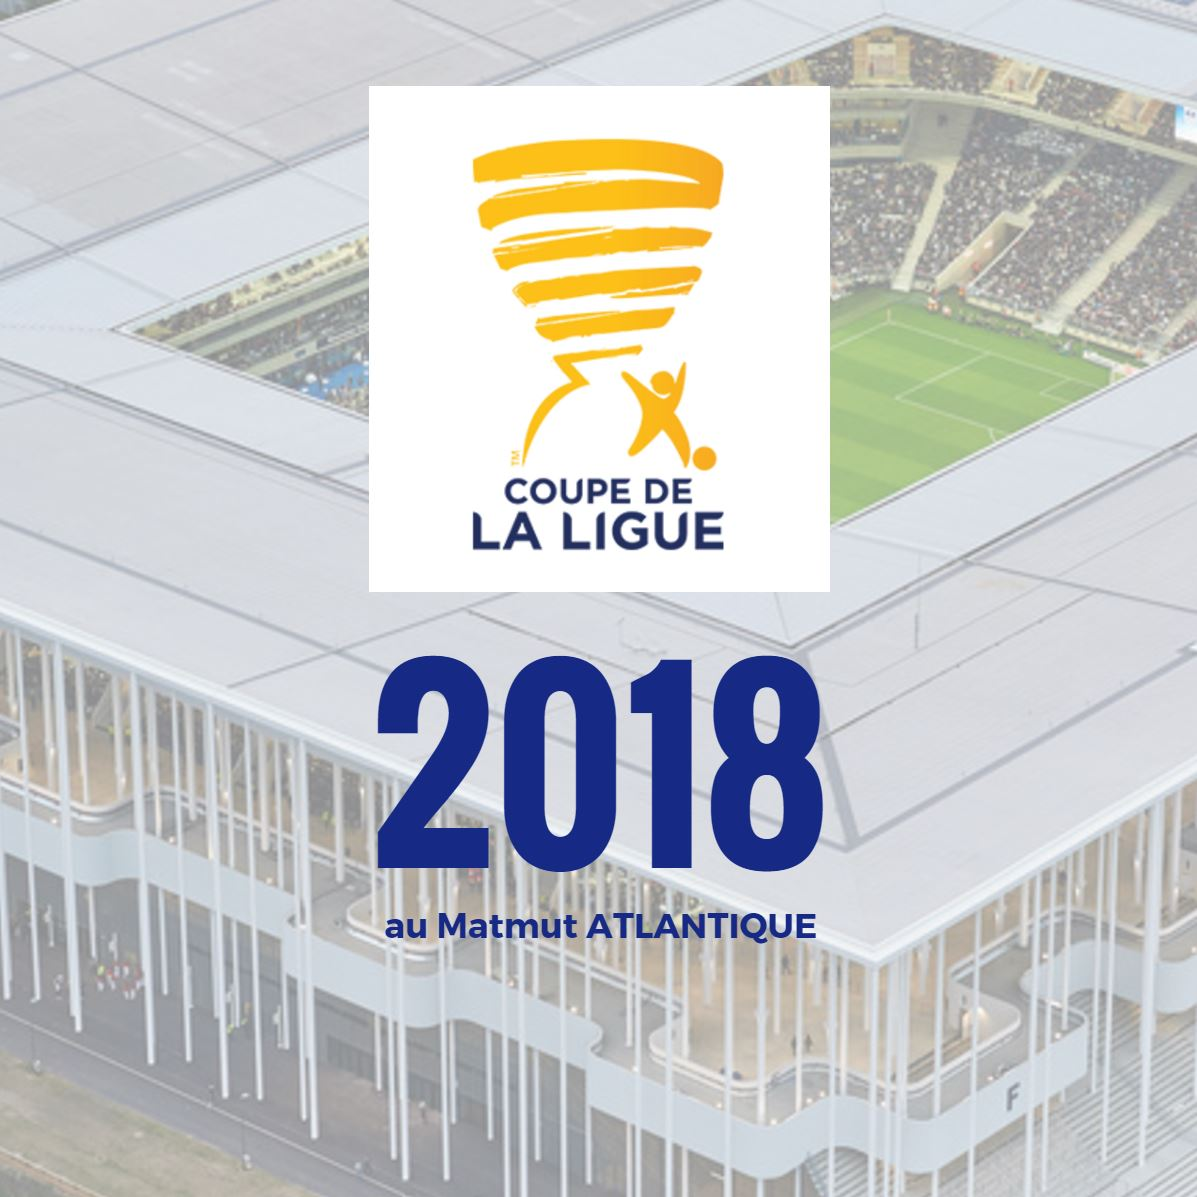 La finale de la Coupe de la Ligue à Bordeaux en 2018